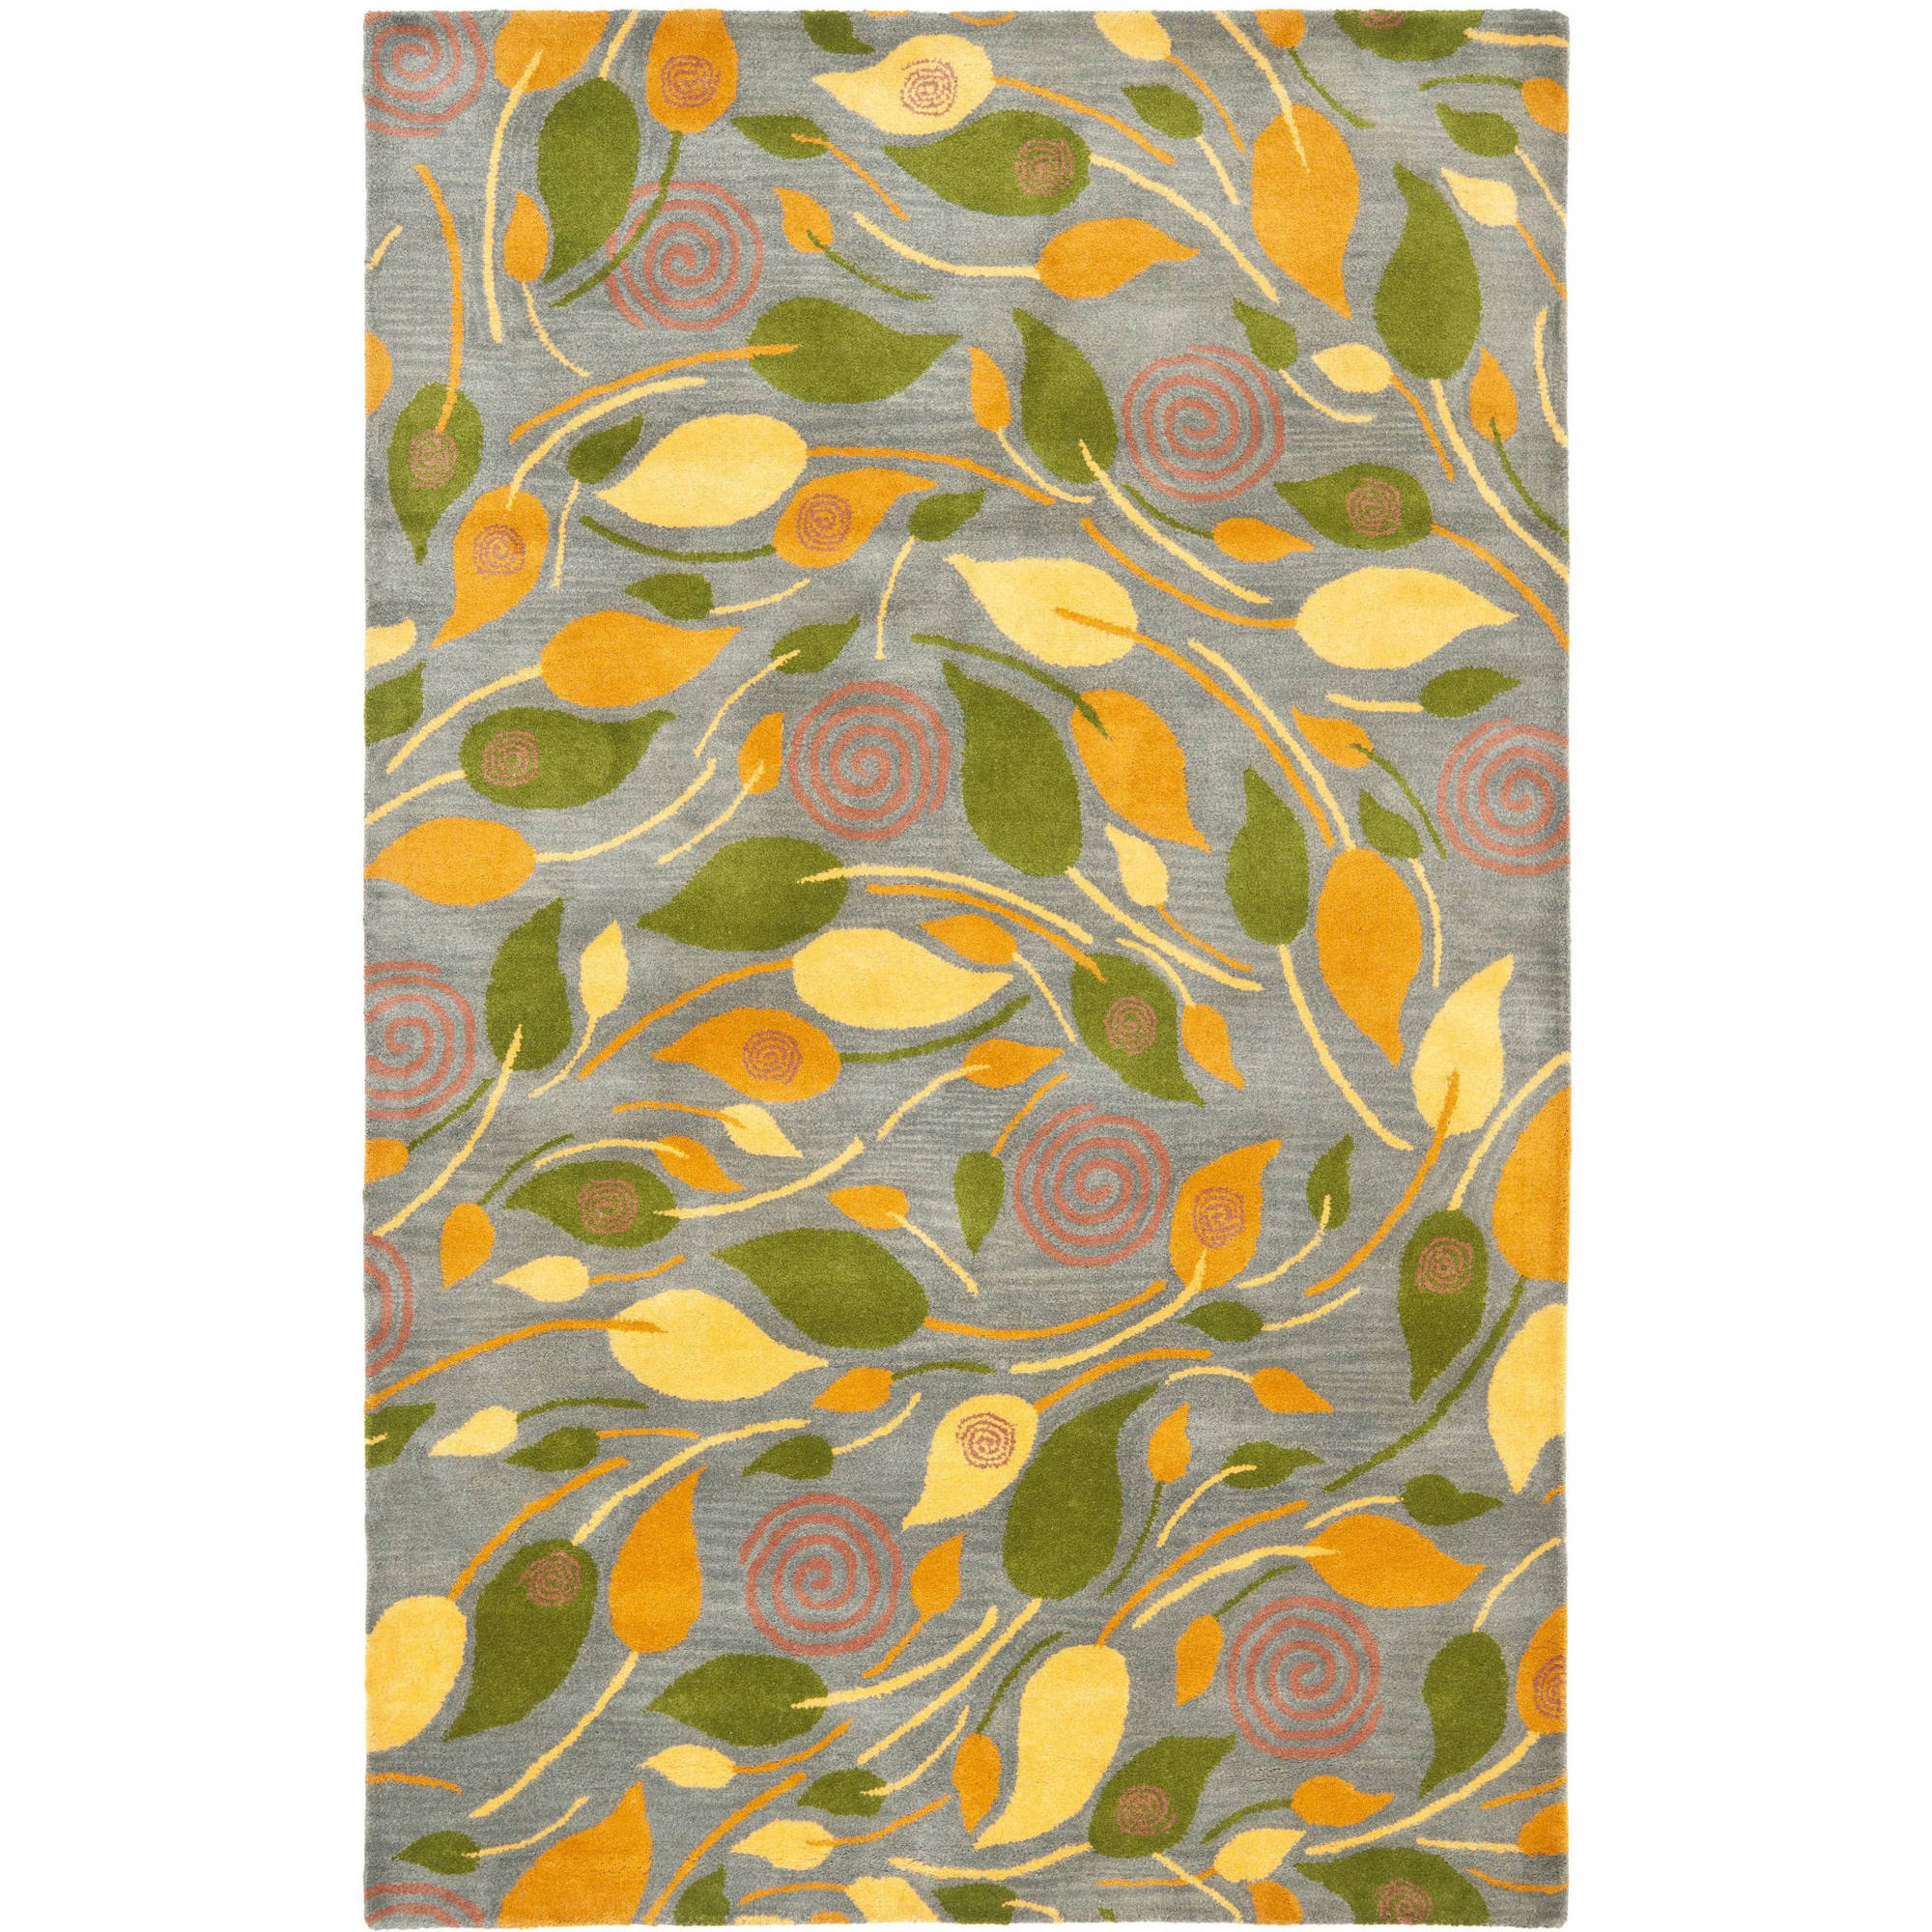 Safavieh Soho Cantor Abstract Wool Area Rug or Runner